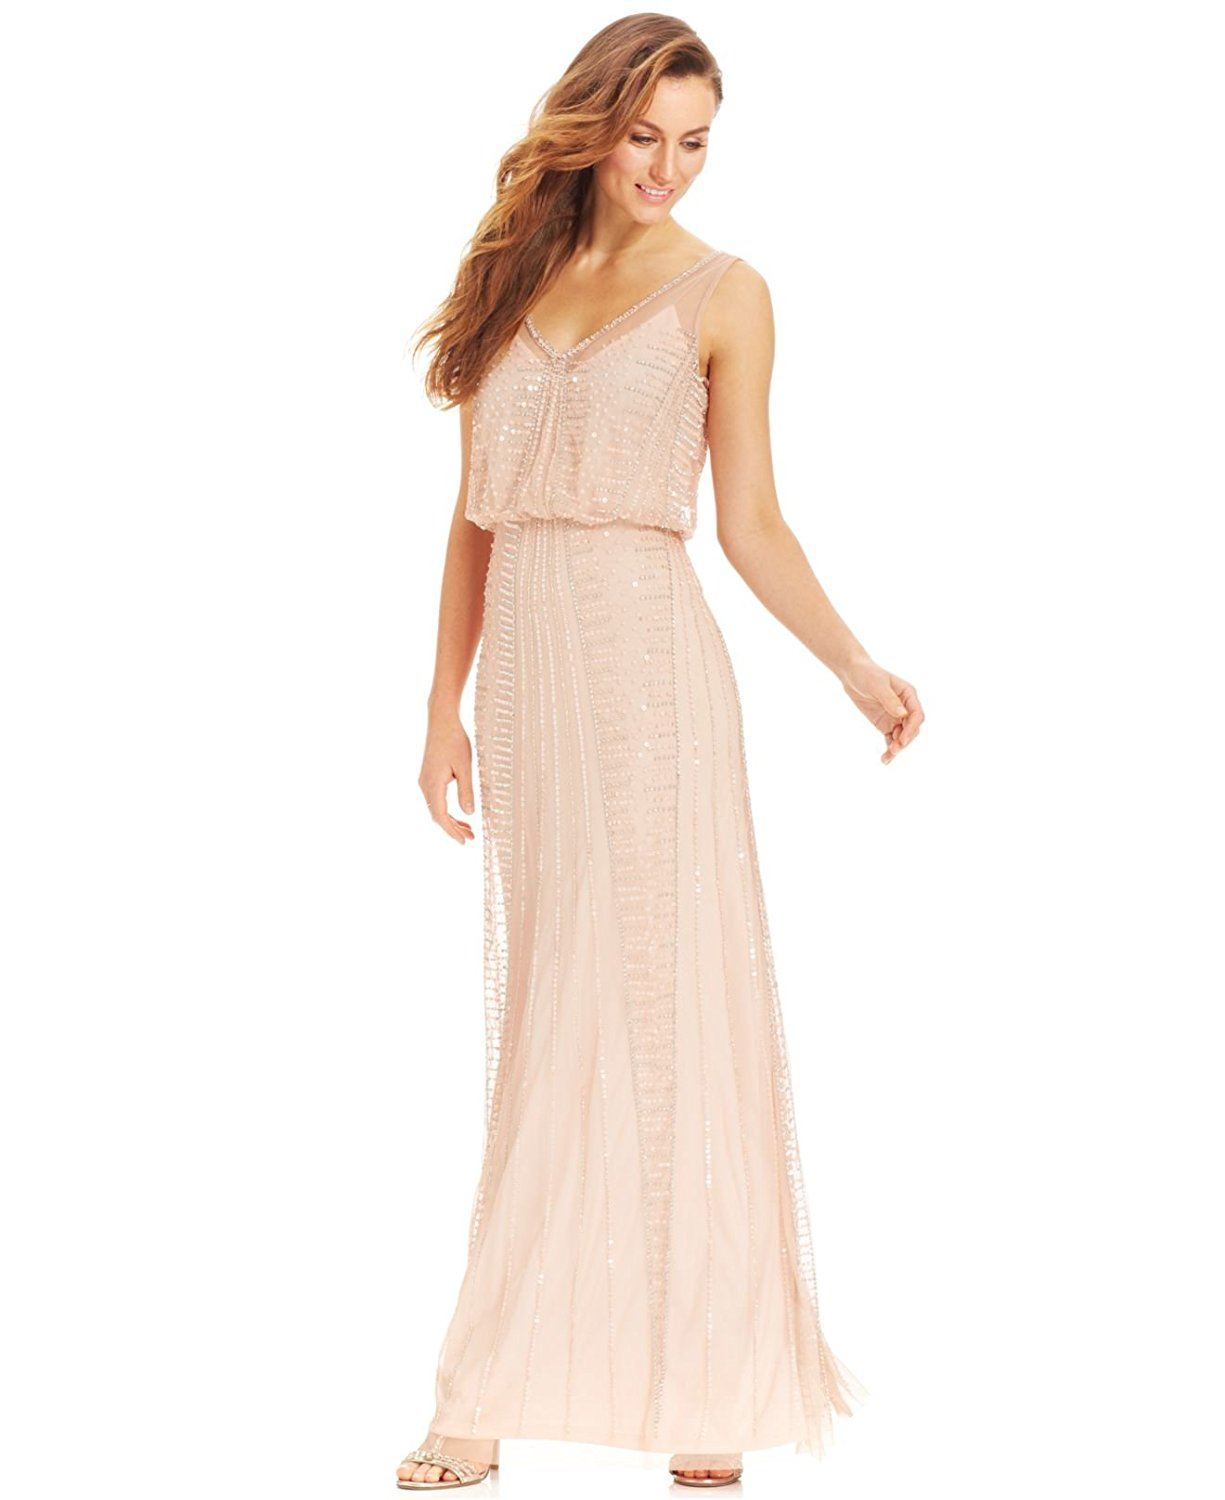 2722-2 Adrianna Papell Illusion Beaded Blouson Gown Blush 12, $299 ...